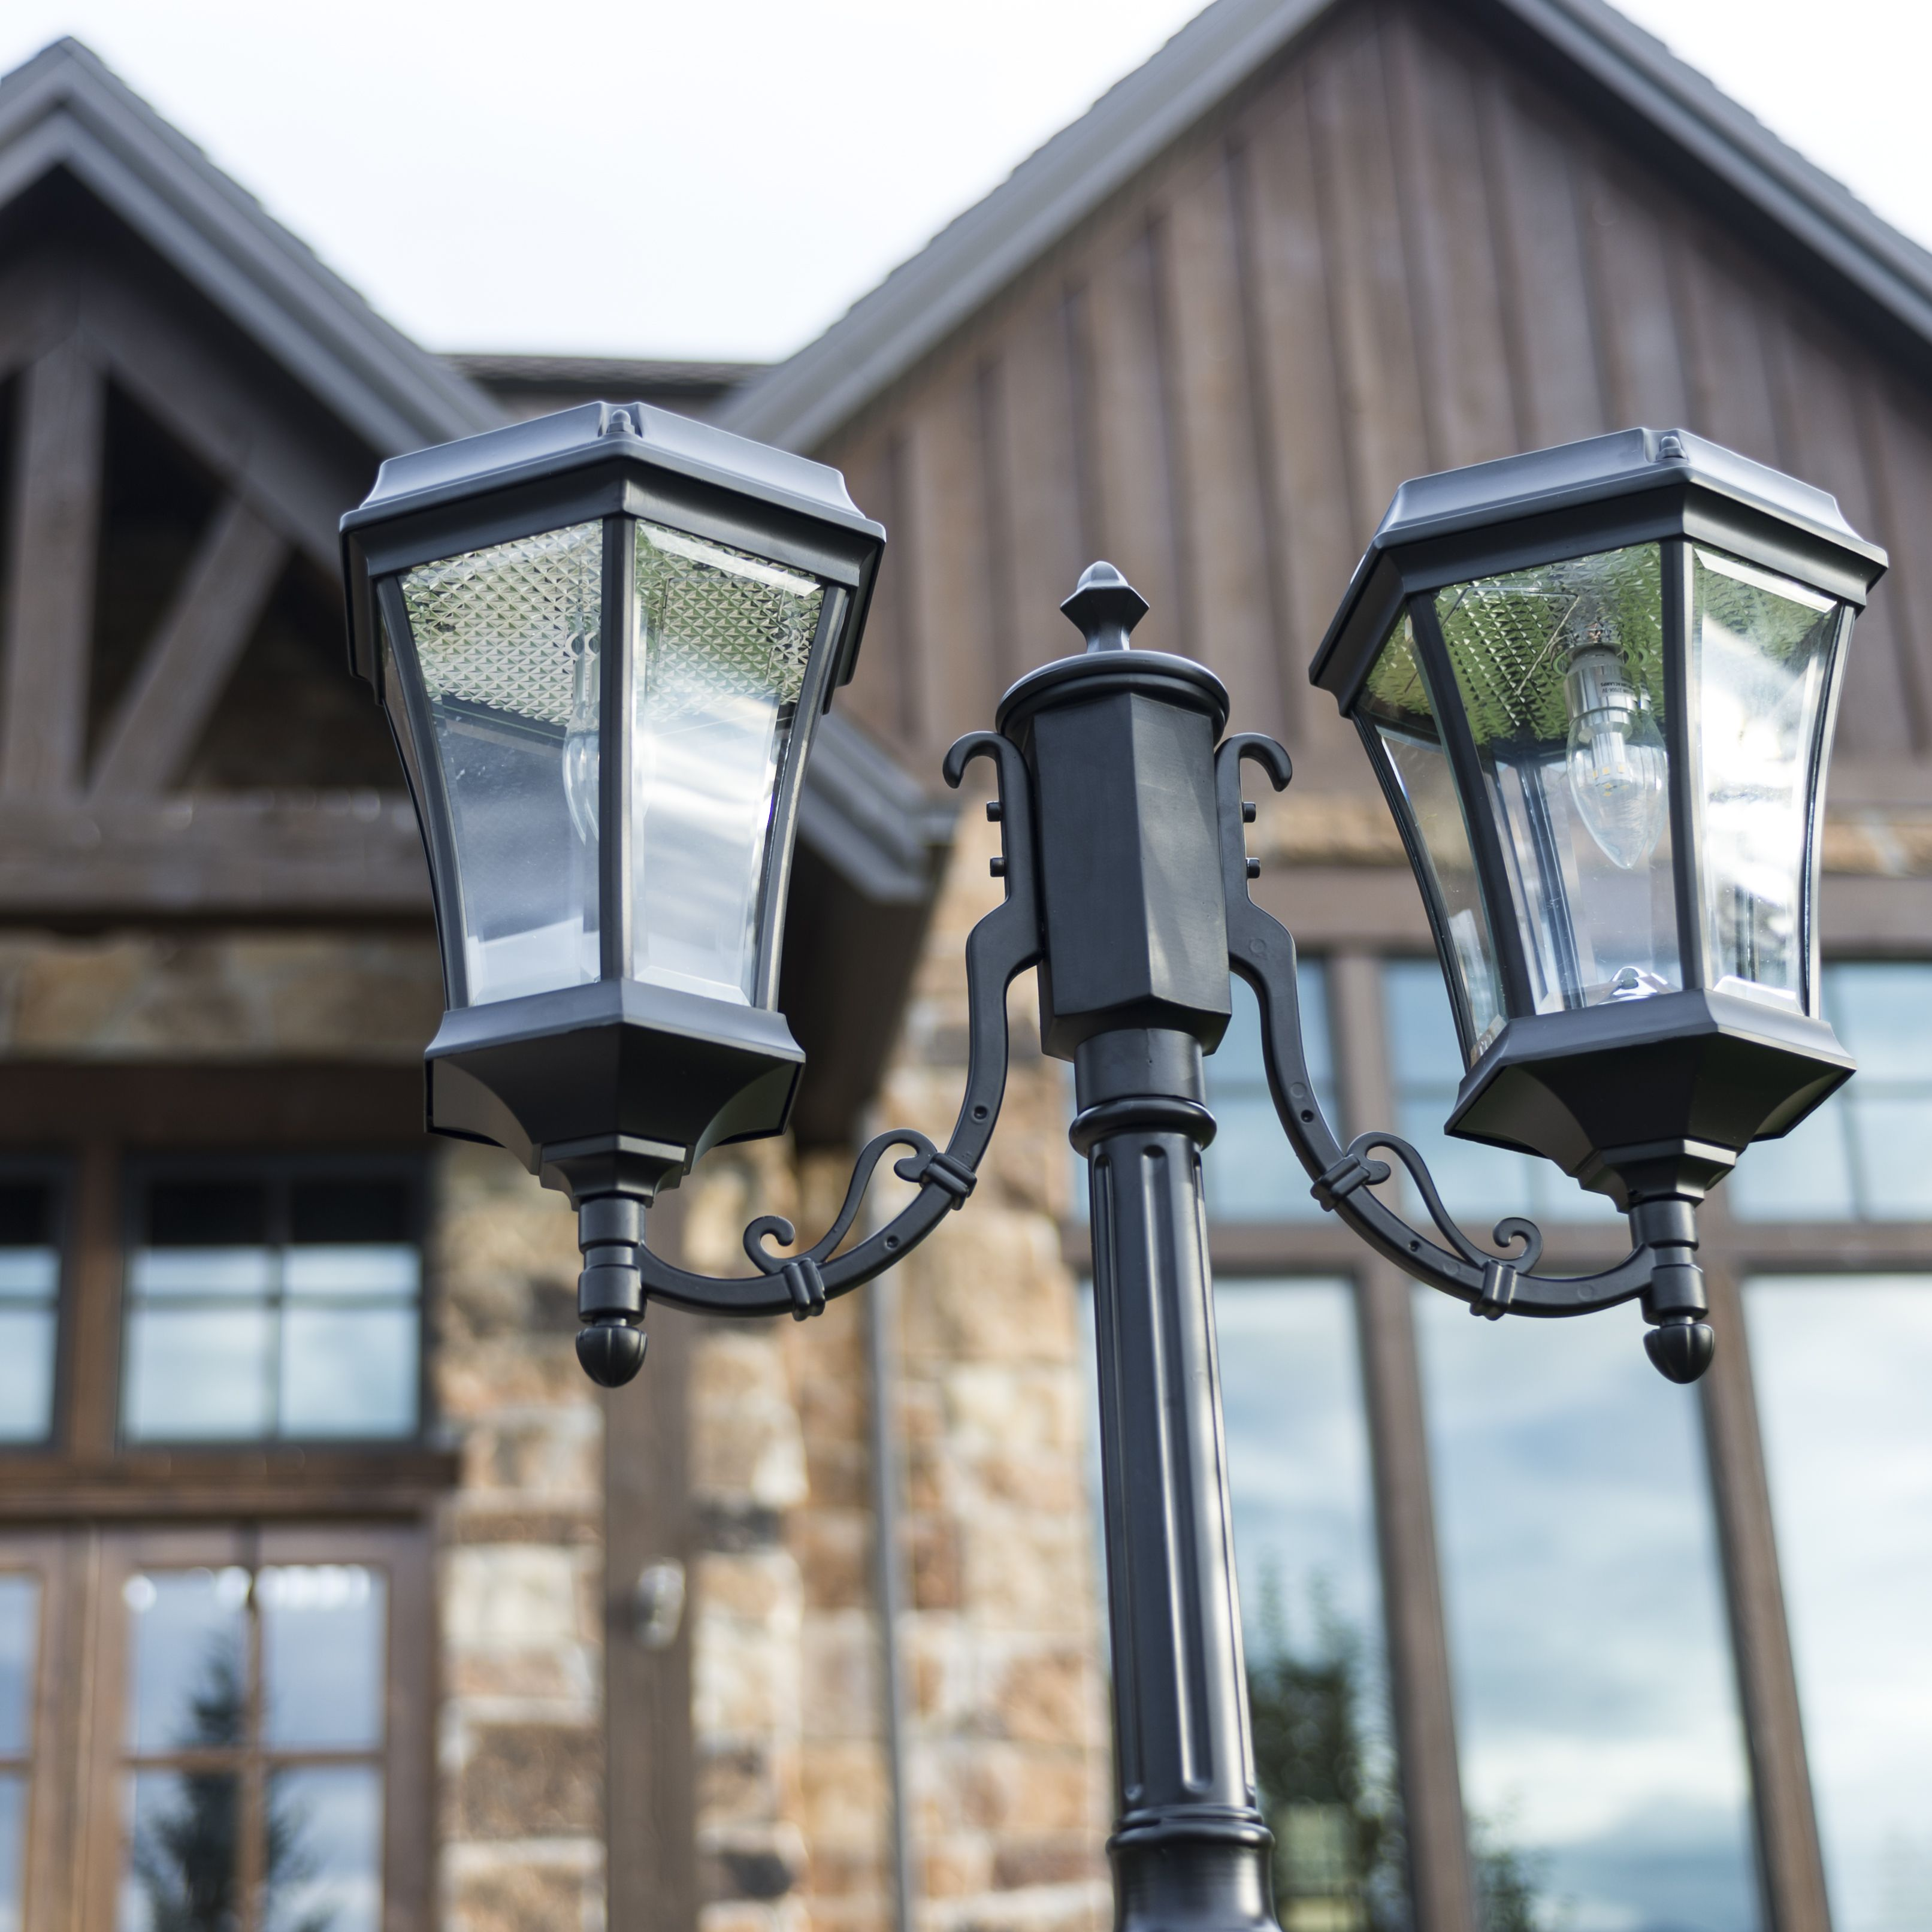 medium resolution of illuminate bright light with the elegant victorian bulb double solar lamp post this perfect diy solar lamp post requires no electrical wiring for